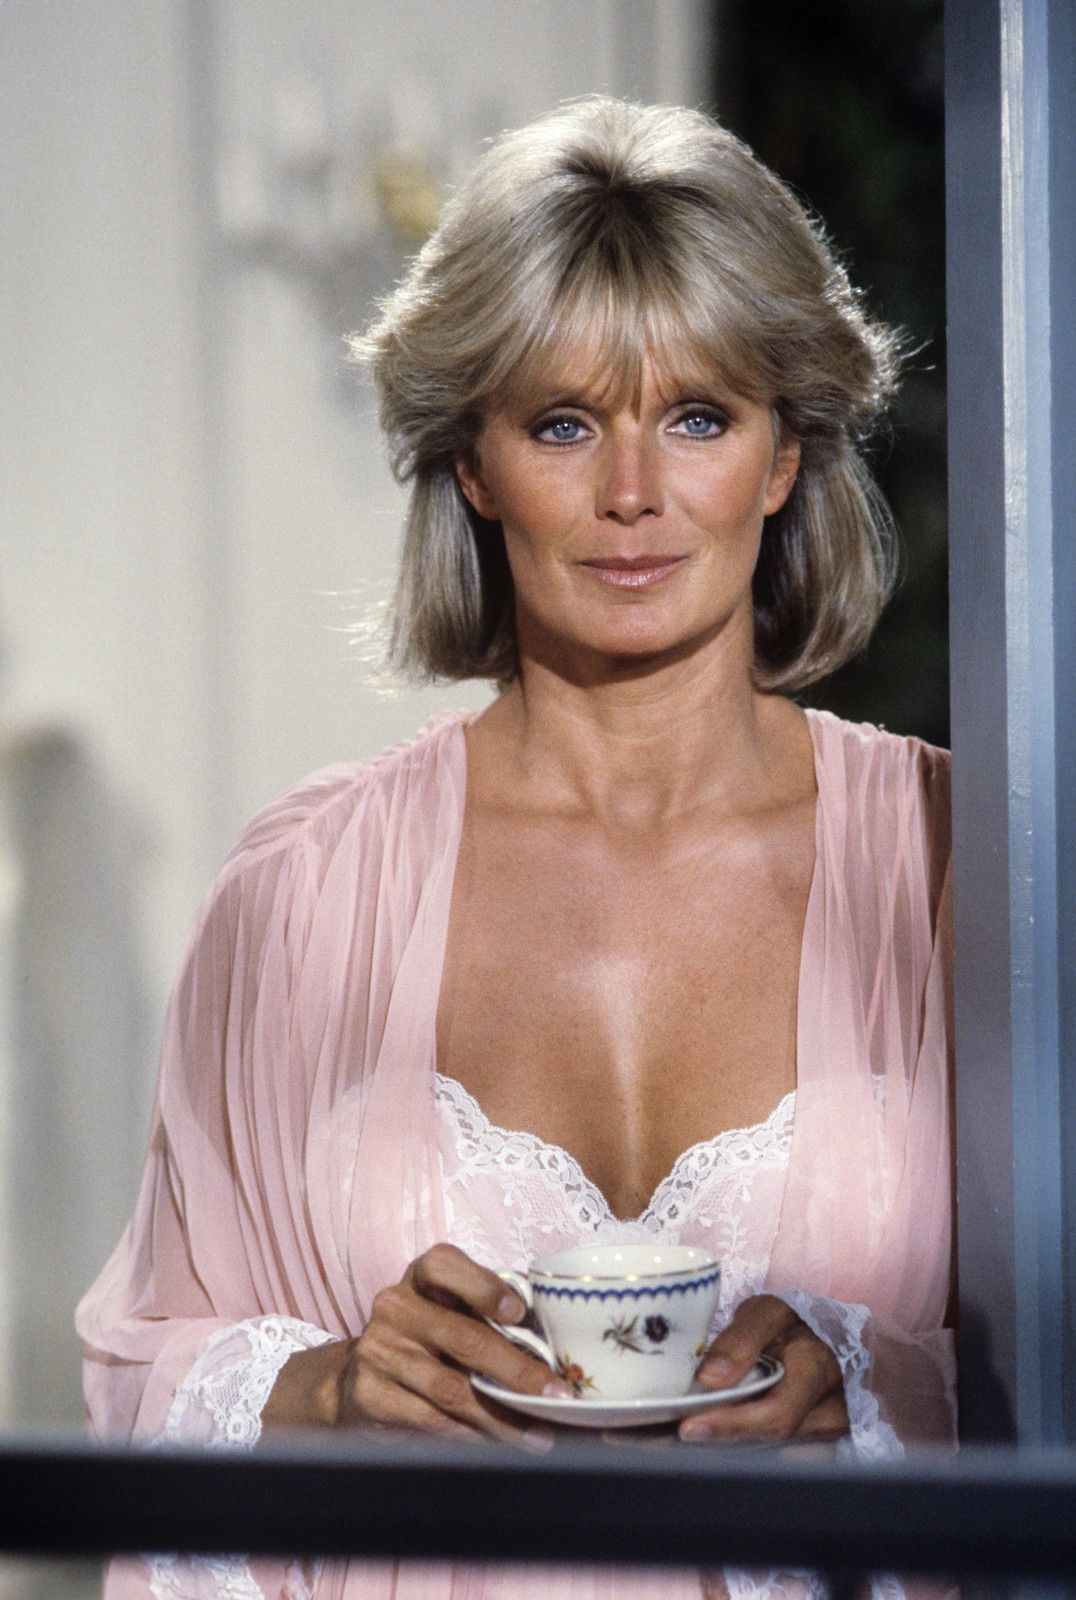 Linda Evans born November 18, 1942 (age 75) Linda Evans born November 18, 1942 (age 75) new images